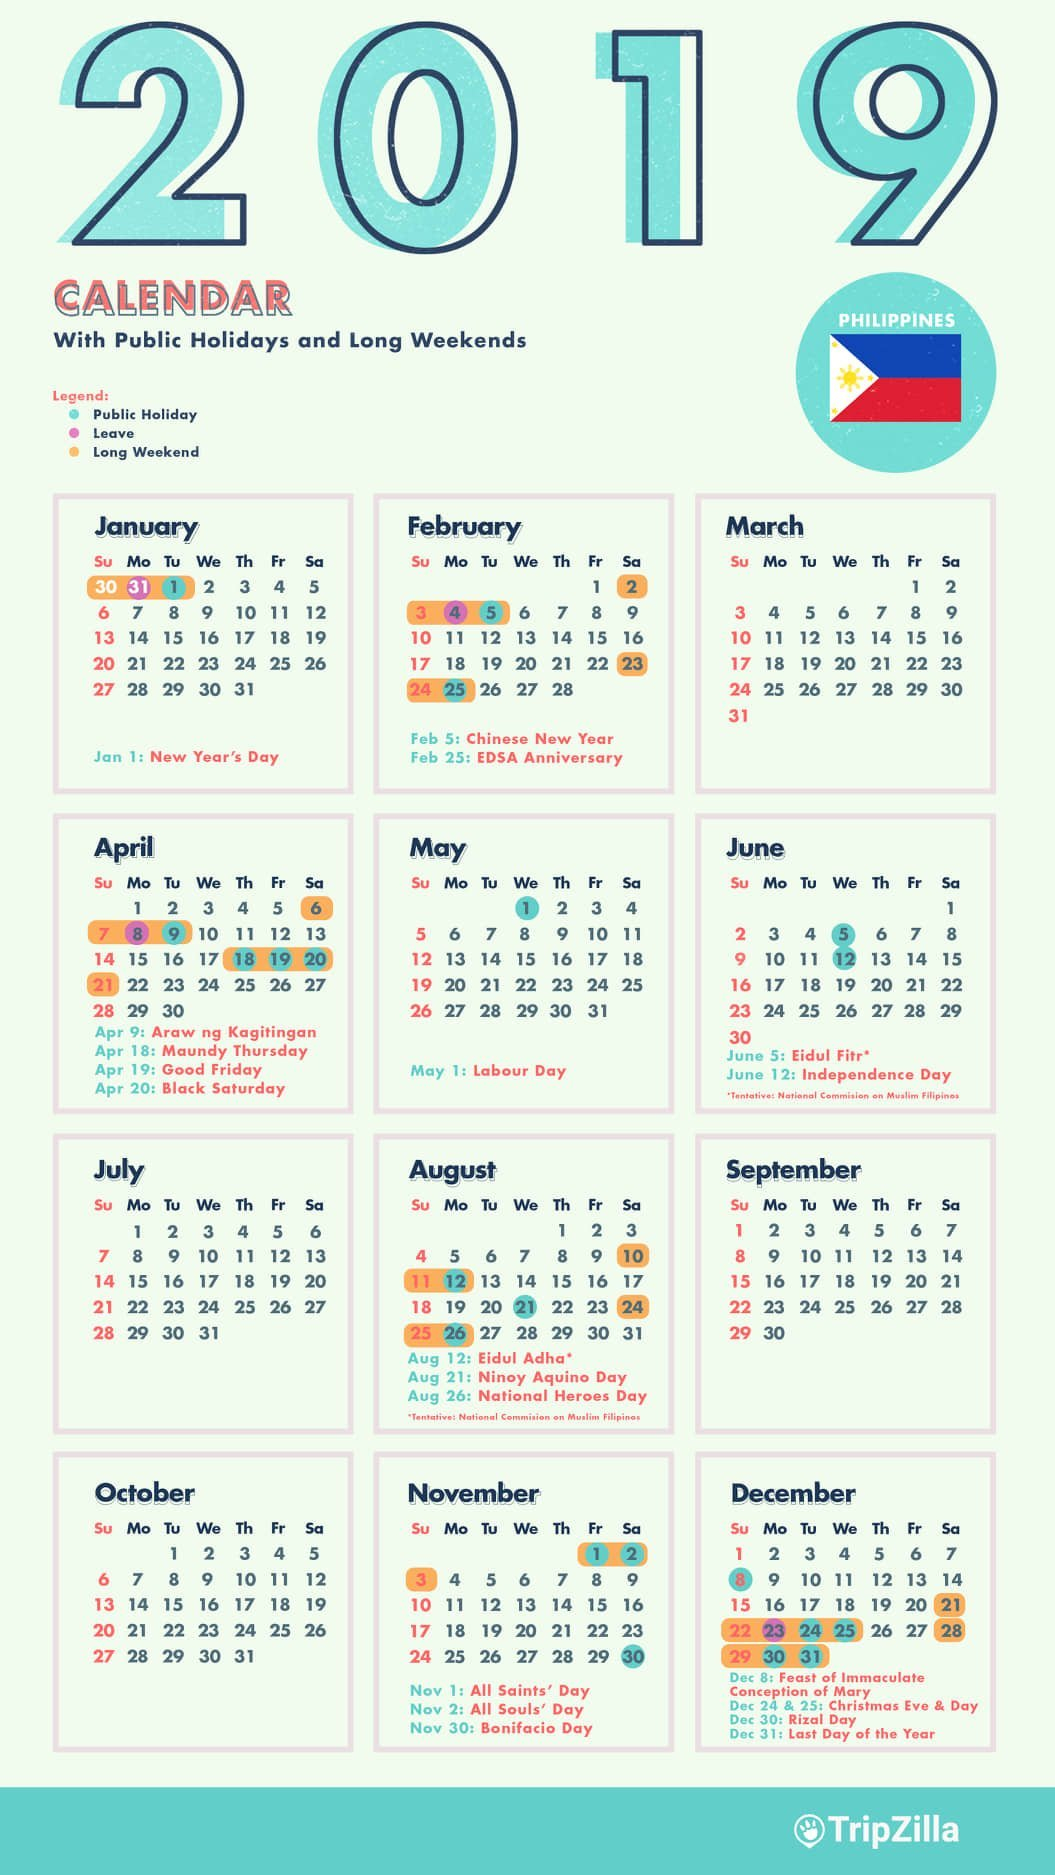 10 Long Weekends In The Philippines In 2019 With Calendar & Cheatsheet Feb 7 2019 Calendar